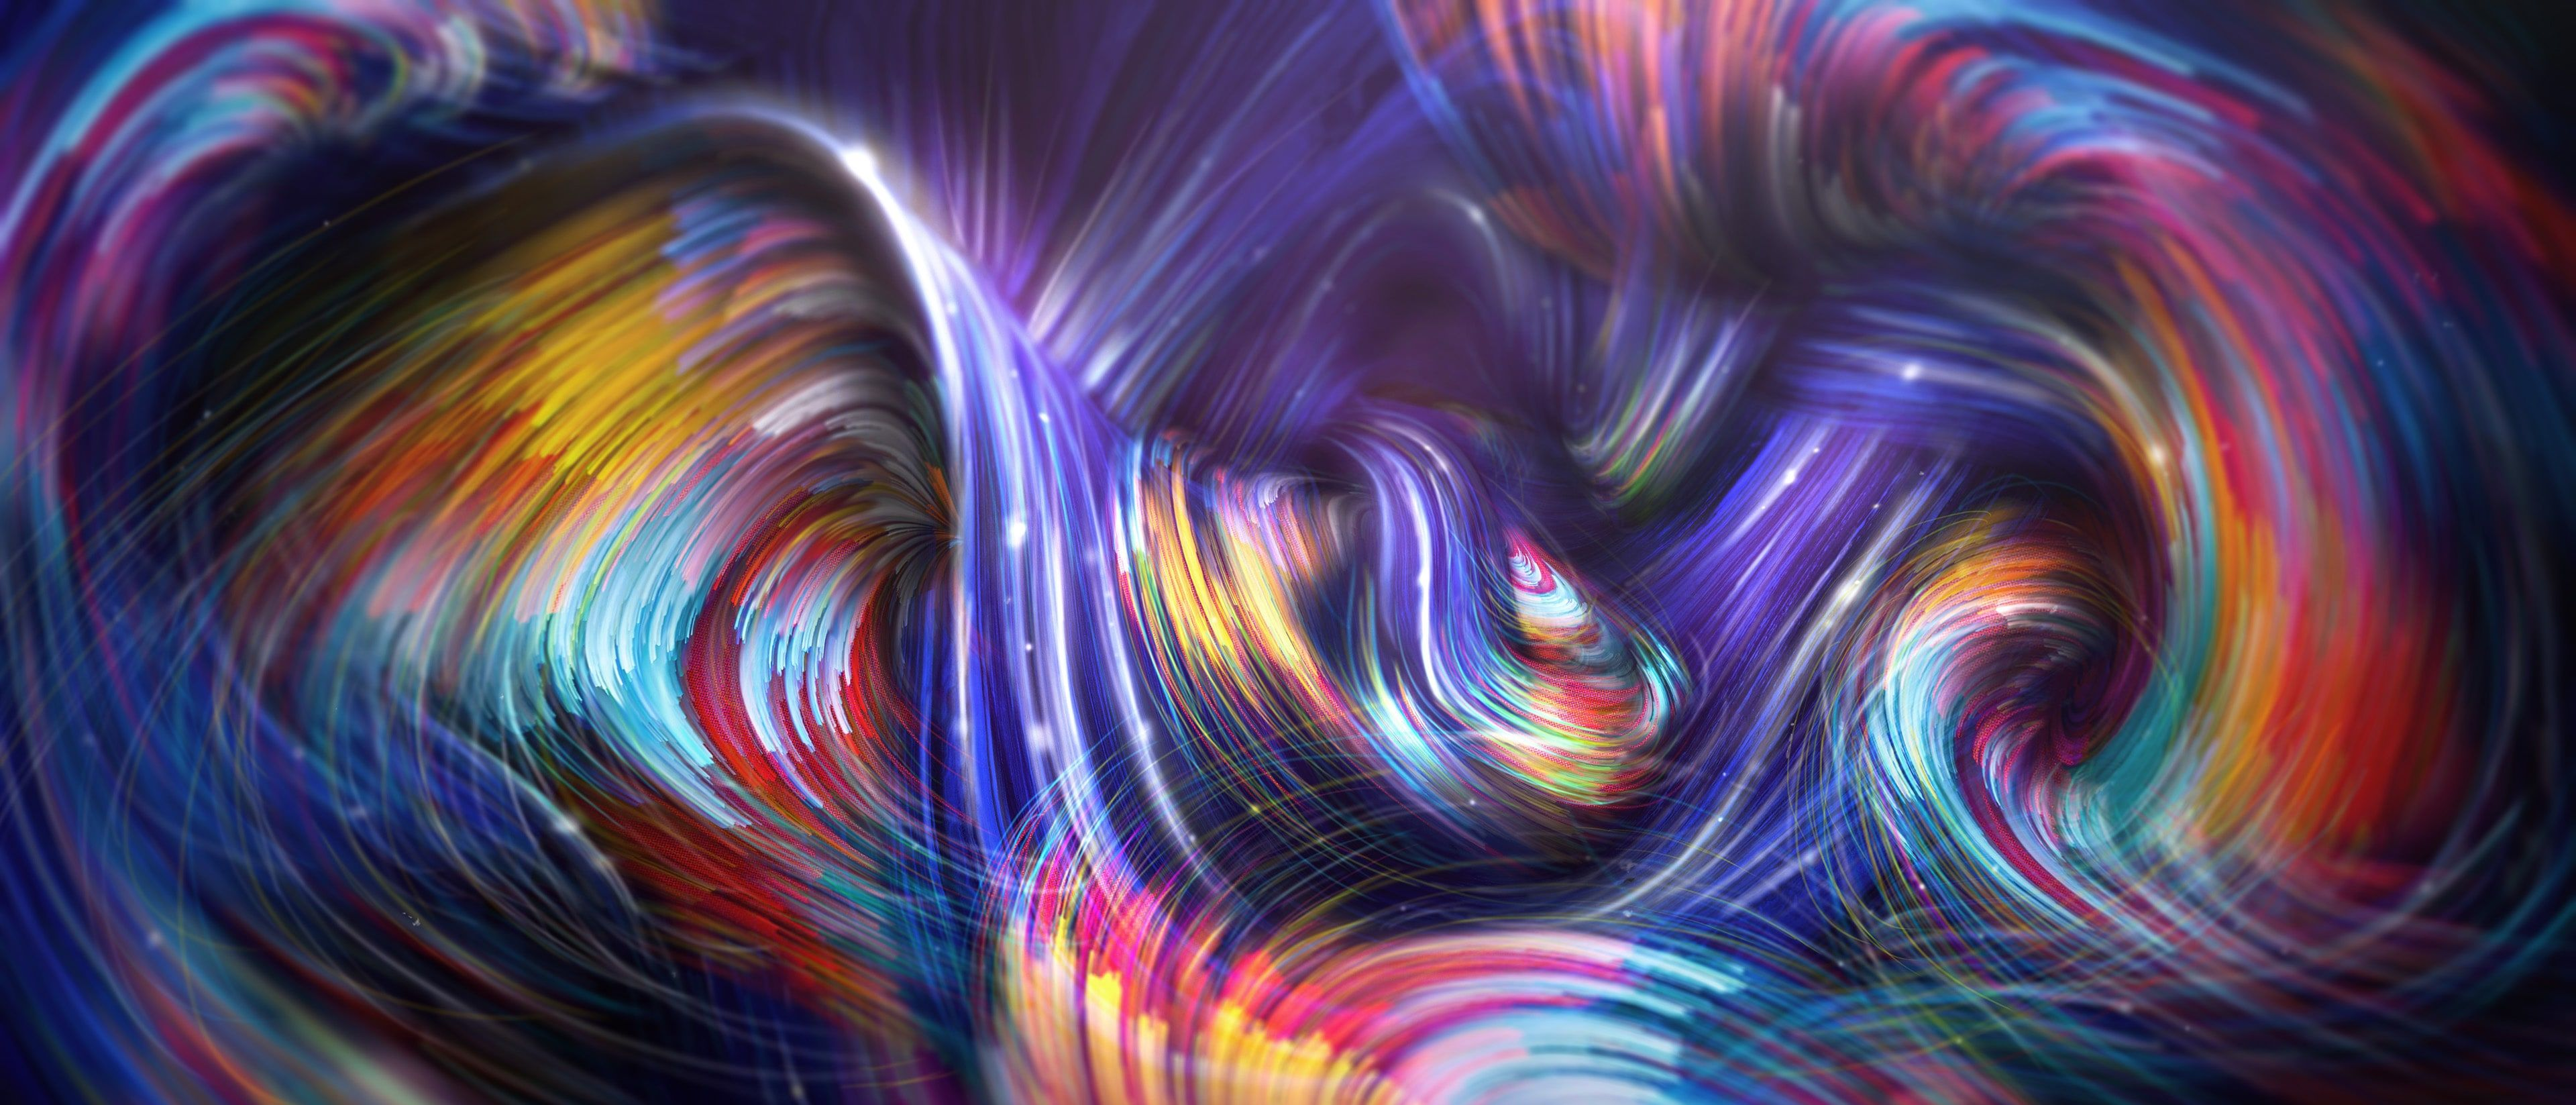 Waves Forces Colorful Photoshop Paint 4k Abstract Abstract